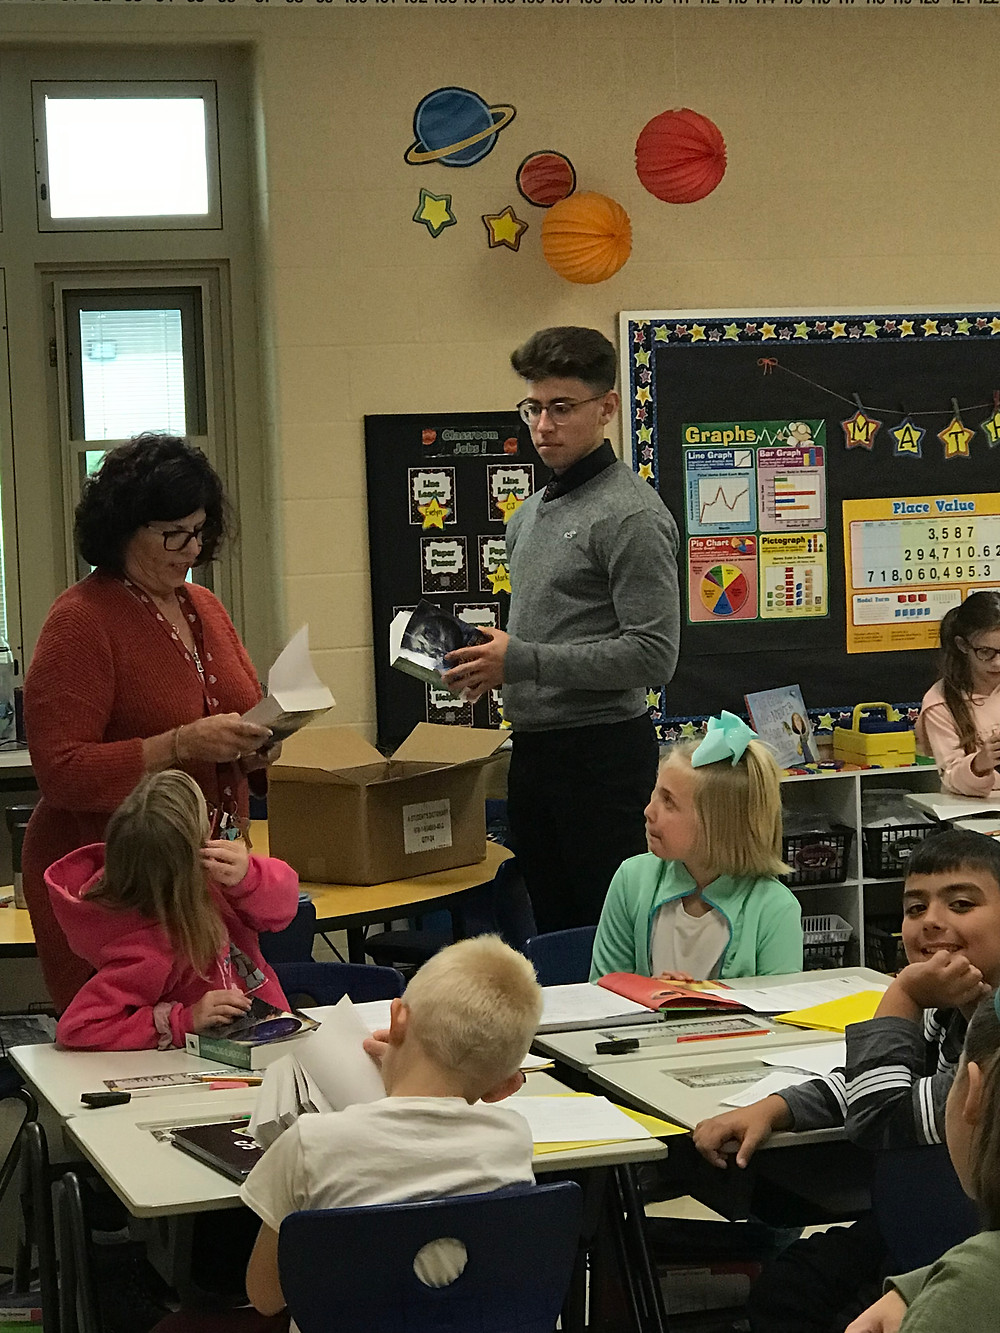 Rotary student in a classroom at the elementary school